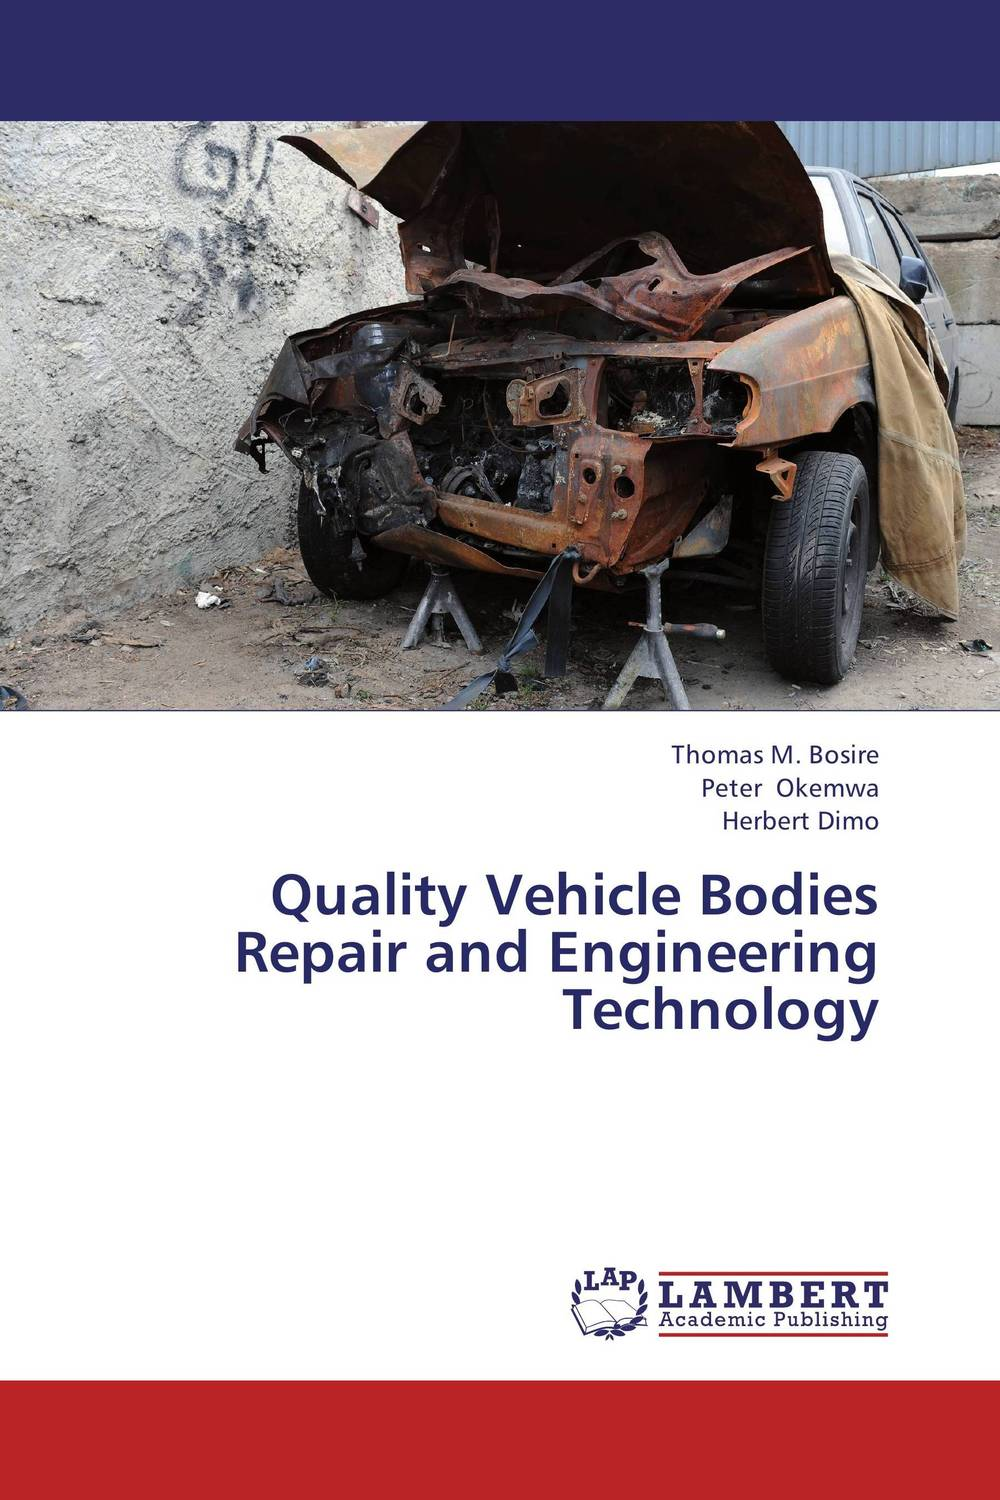 Quality Vehicle Bodies Repair and Engineering Technology